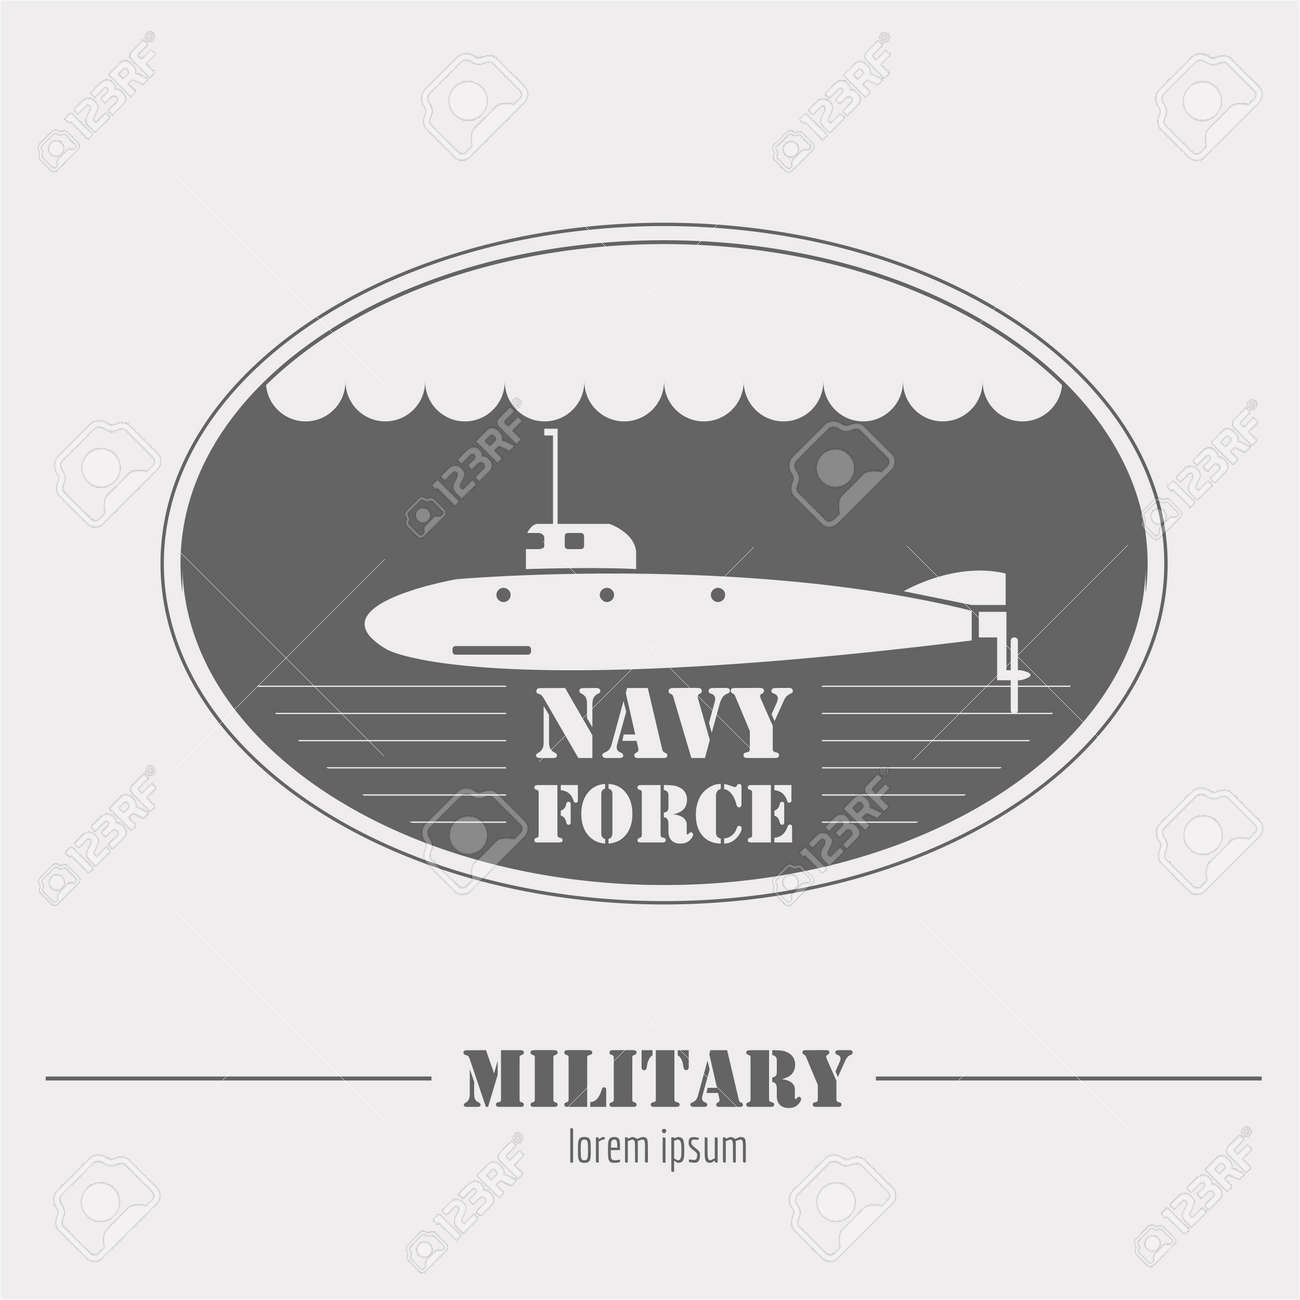 military logo navy force submarine graphic template vector